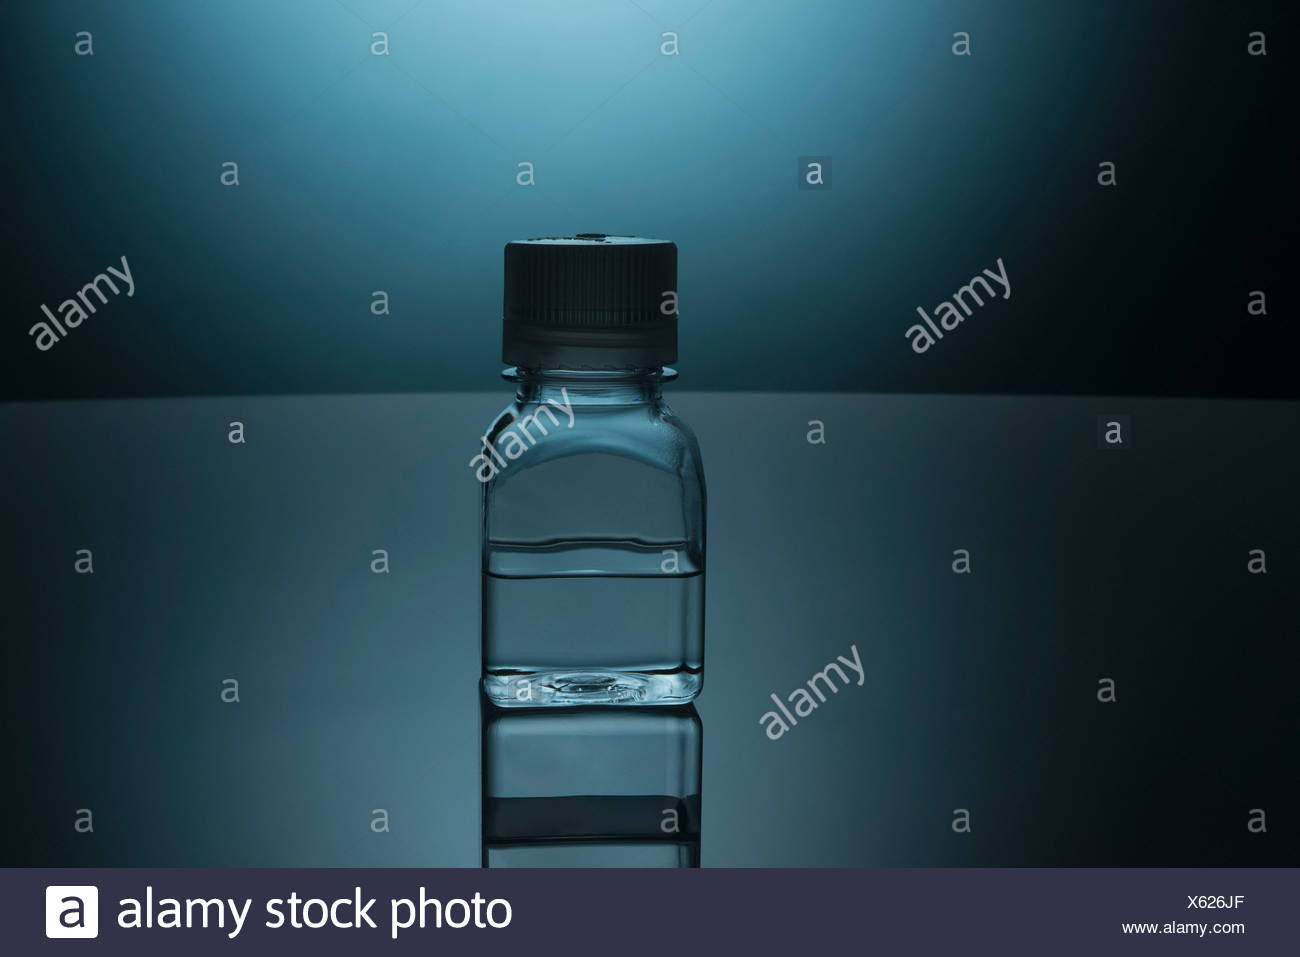 Glass bottle of clear liquid - Stock Image